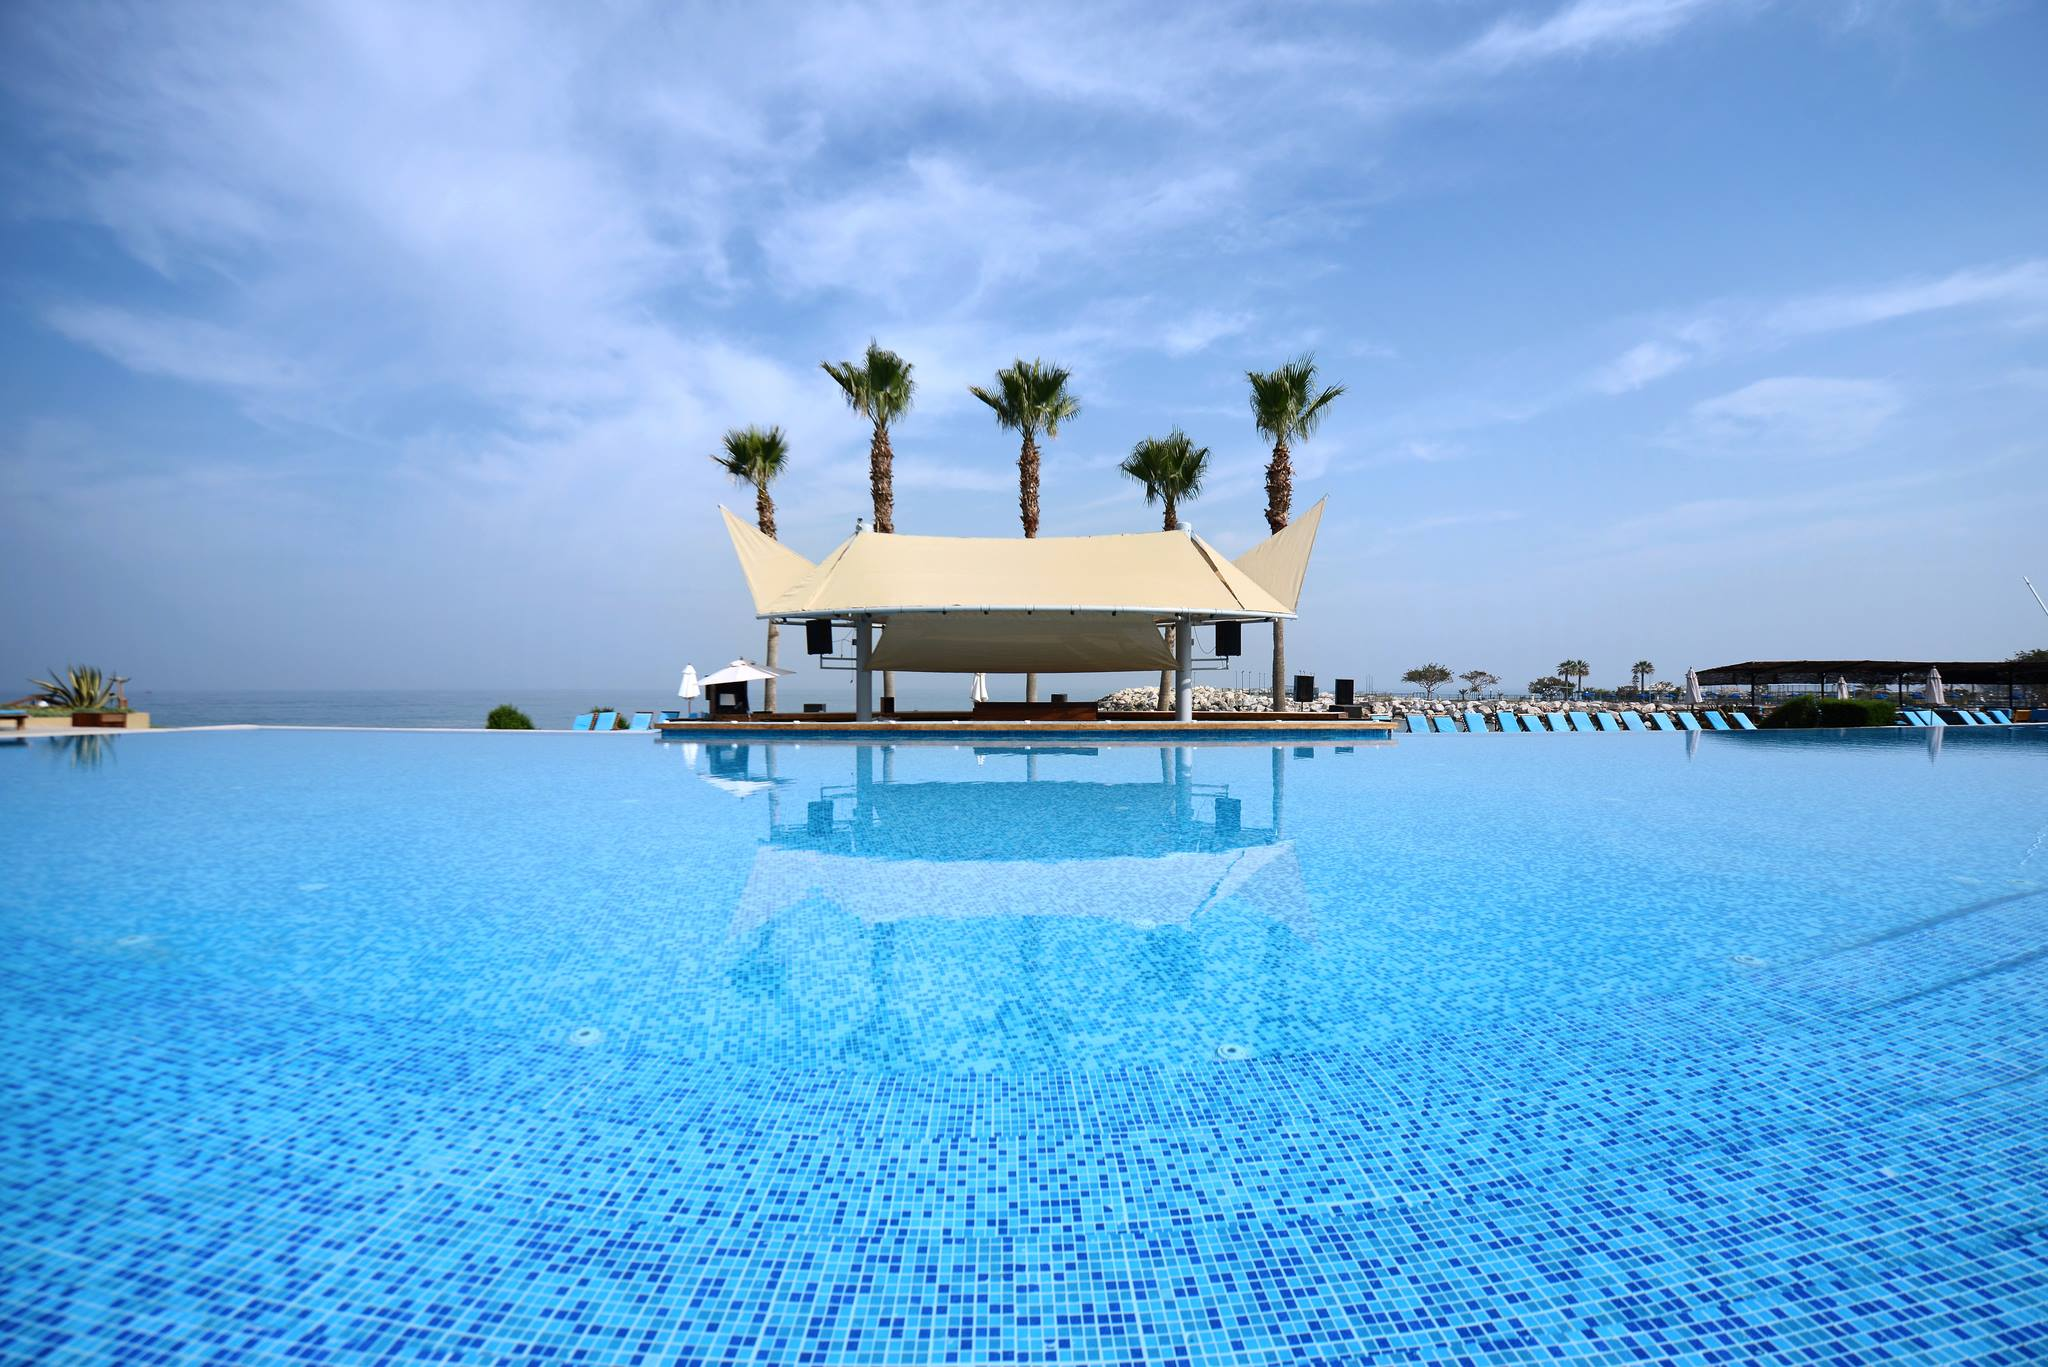 top 10: beach resorts & bars lebanon - smf